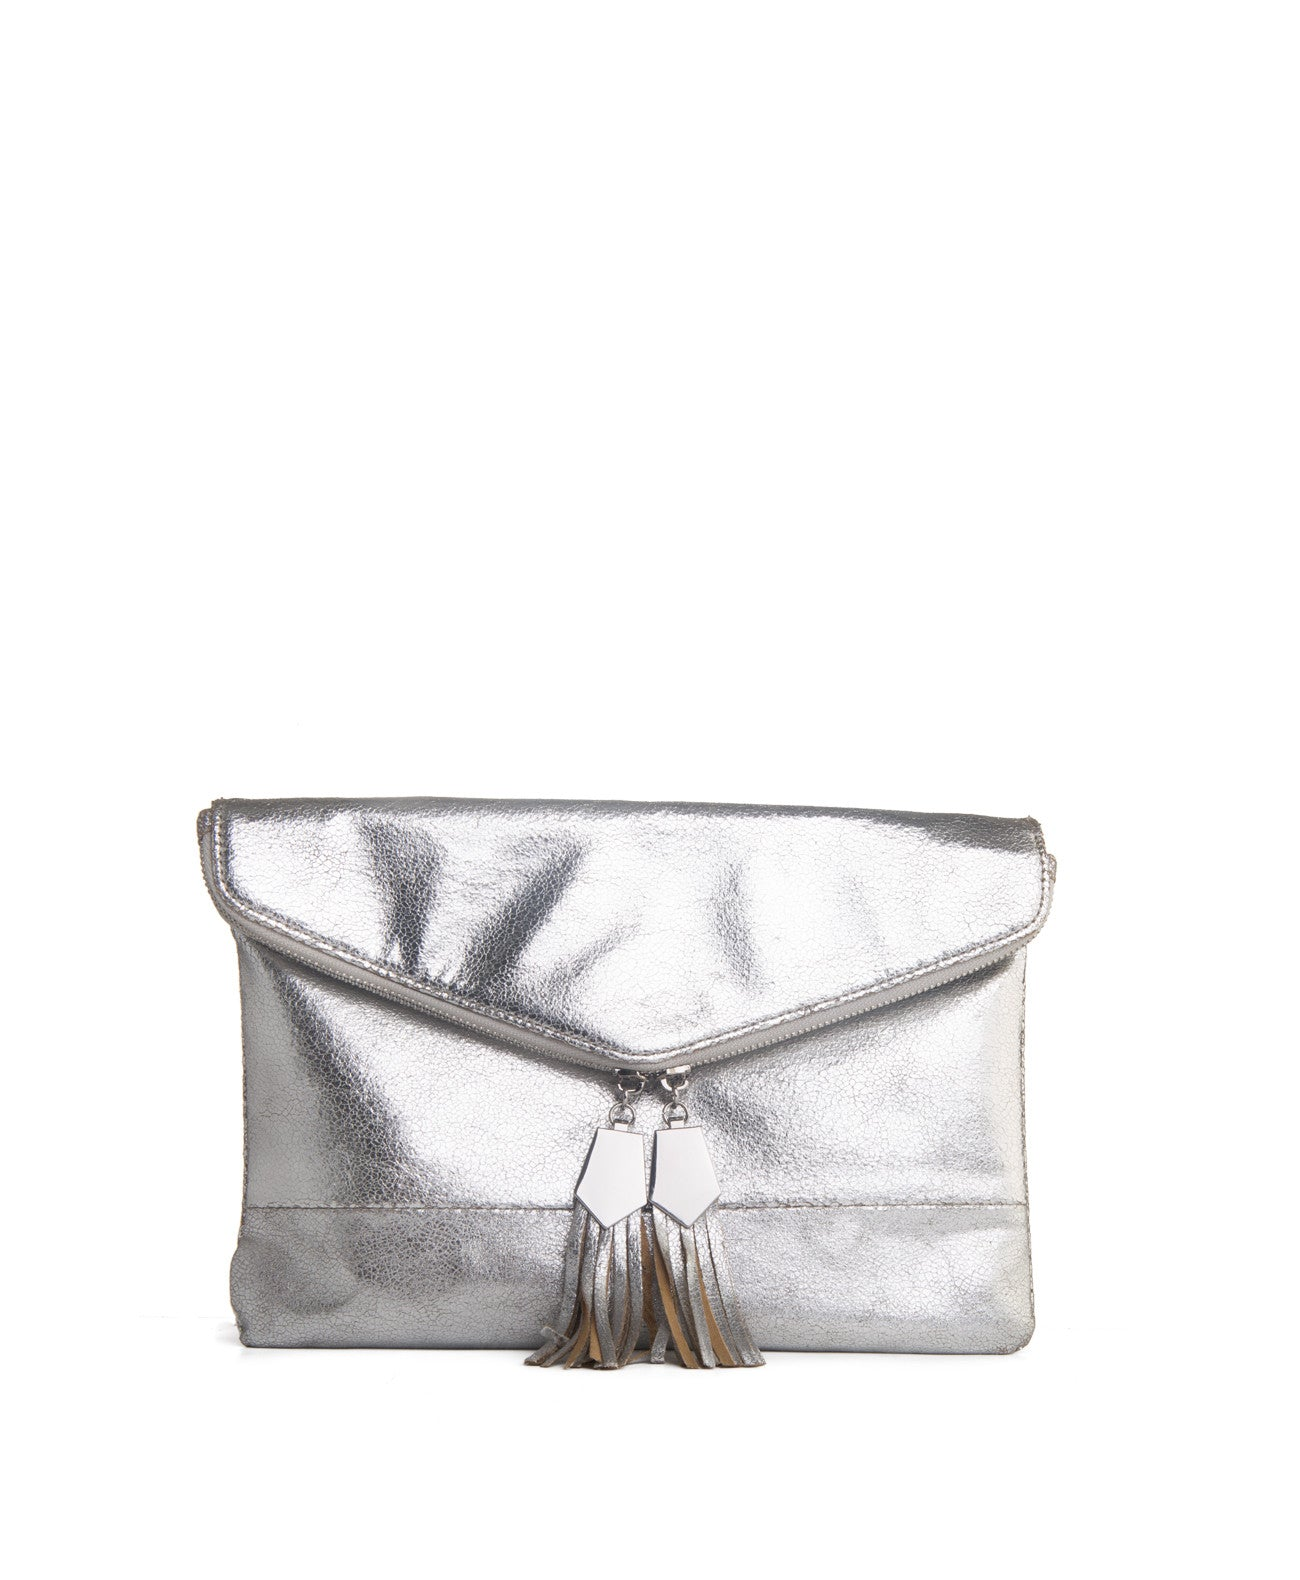 Brooklyn silver clutch - Koko & Palenki - 1